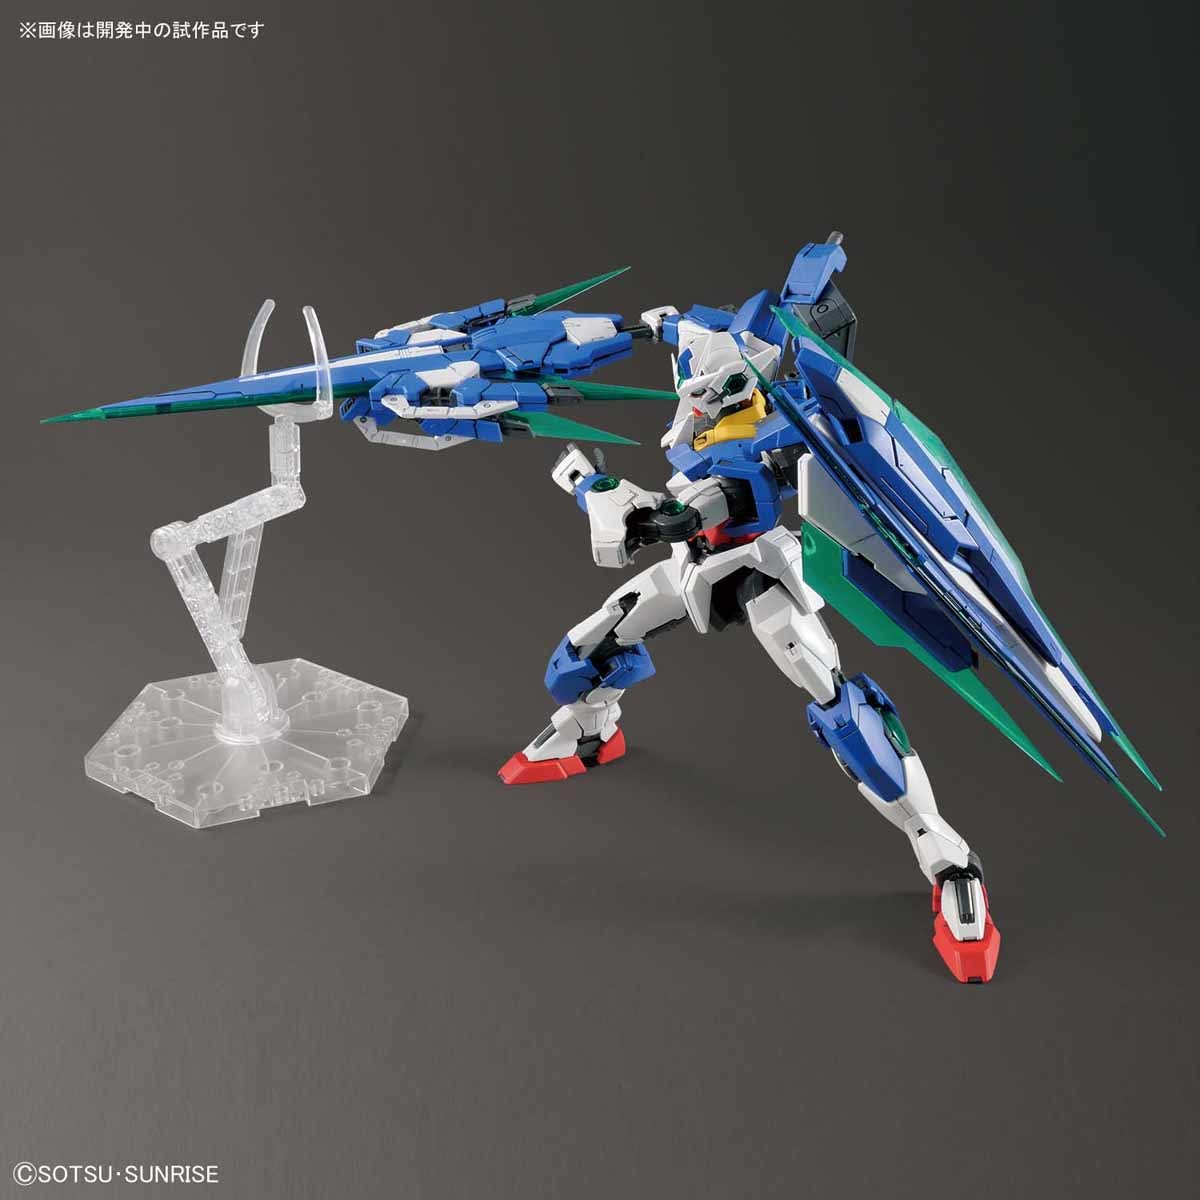 MG 1/100 00 Quanta Full Saber gn sword IV wave